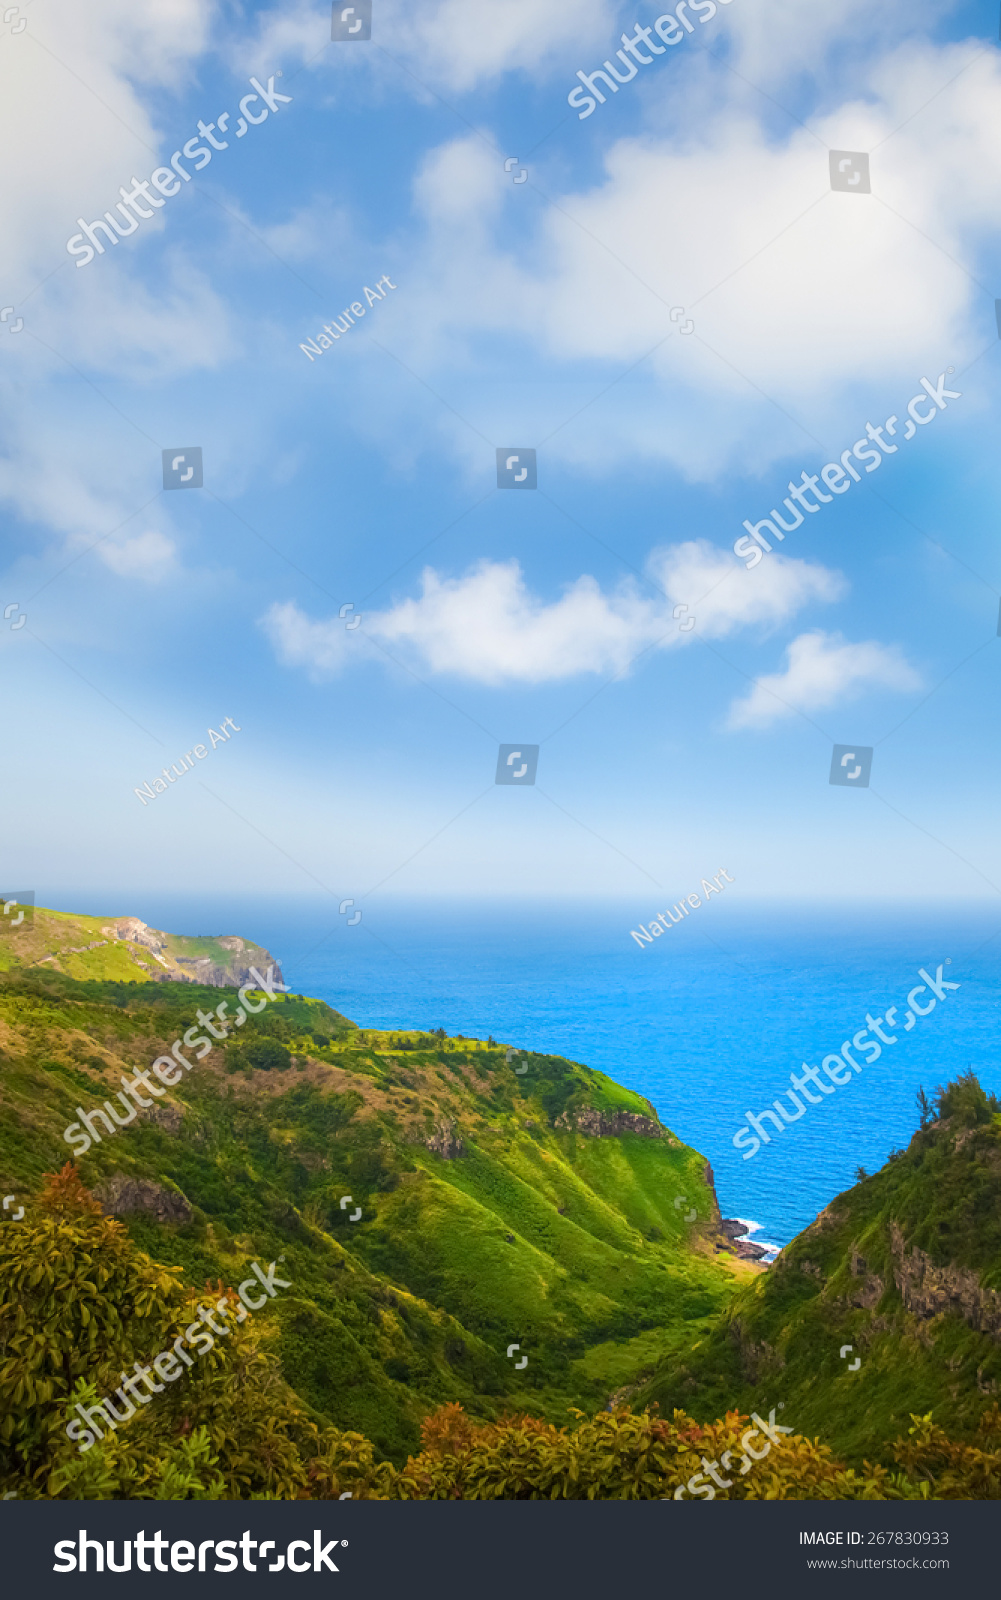 Mountain landscape with pacific ocean in the background, island Maui, Hawaii. Composition of natural background, bright green grass and blue sky with clouds #267830933